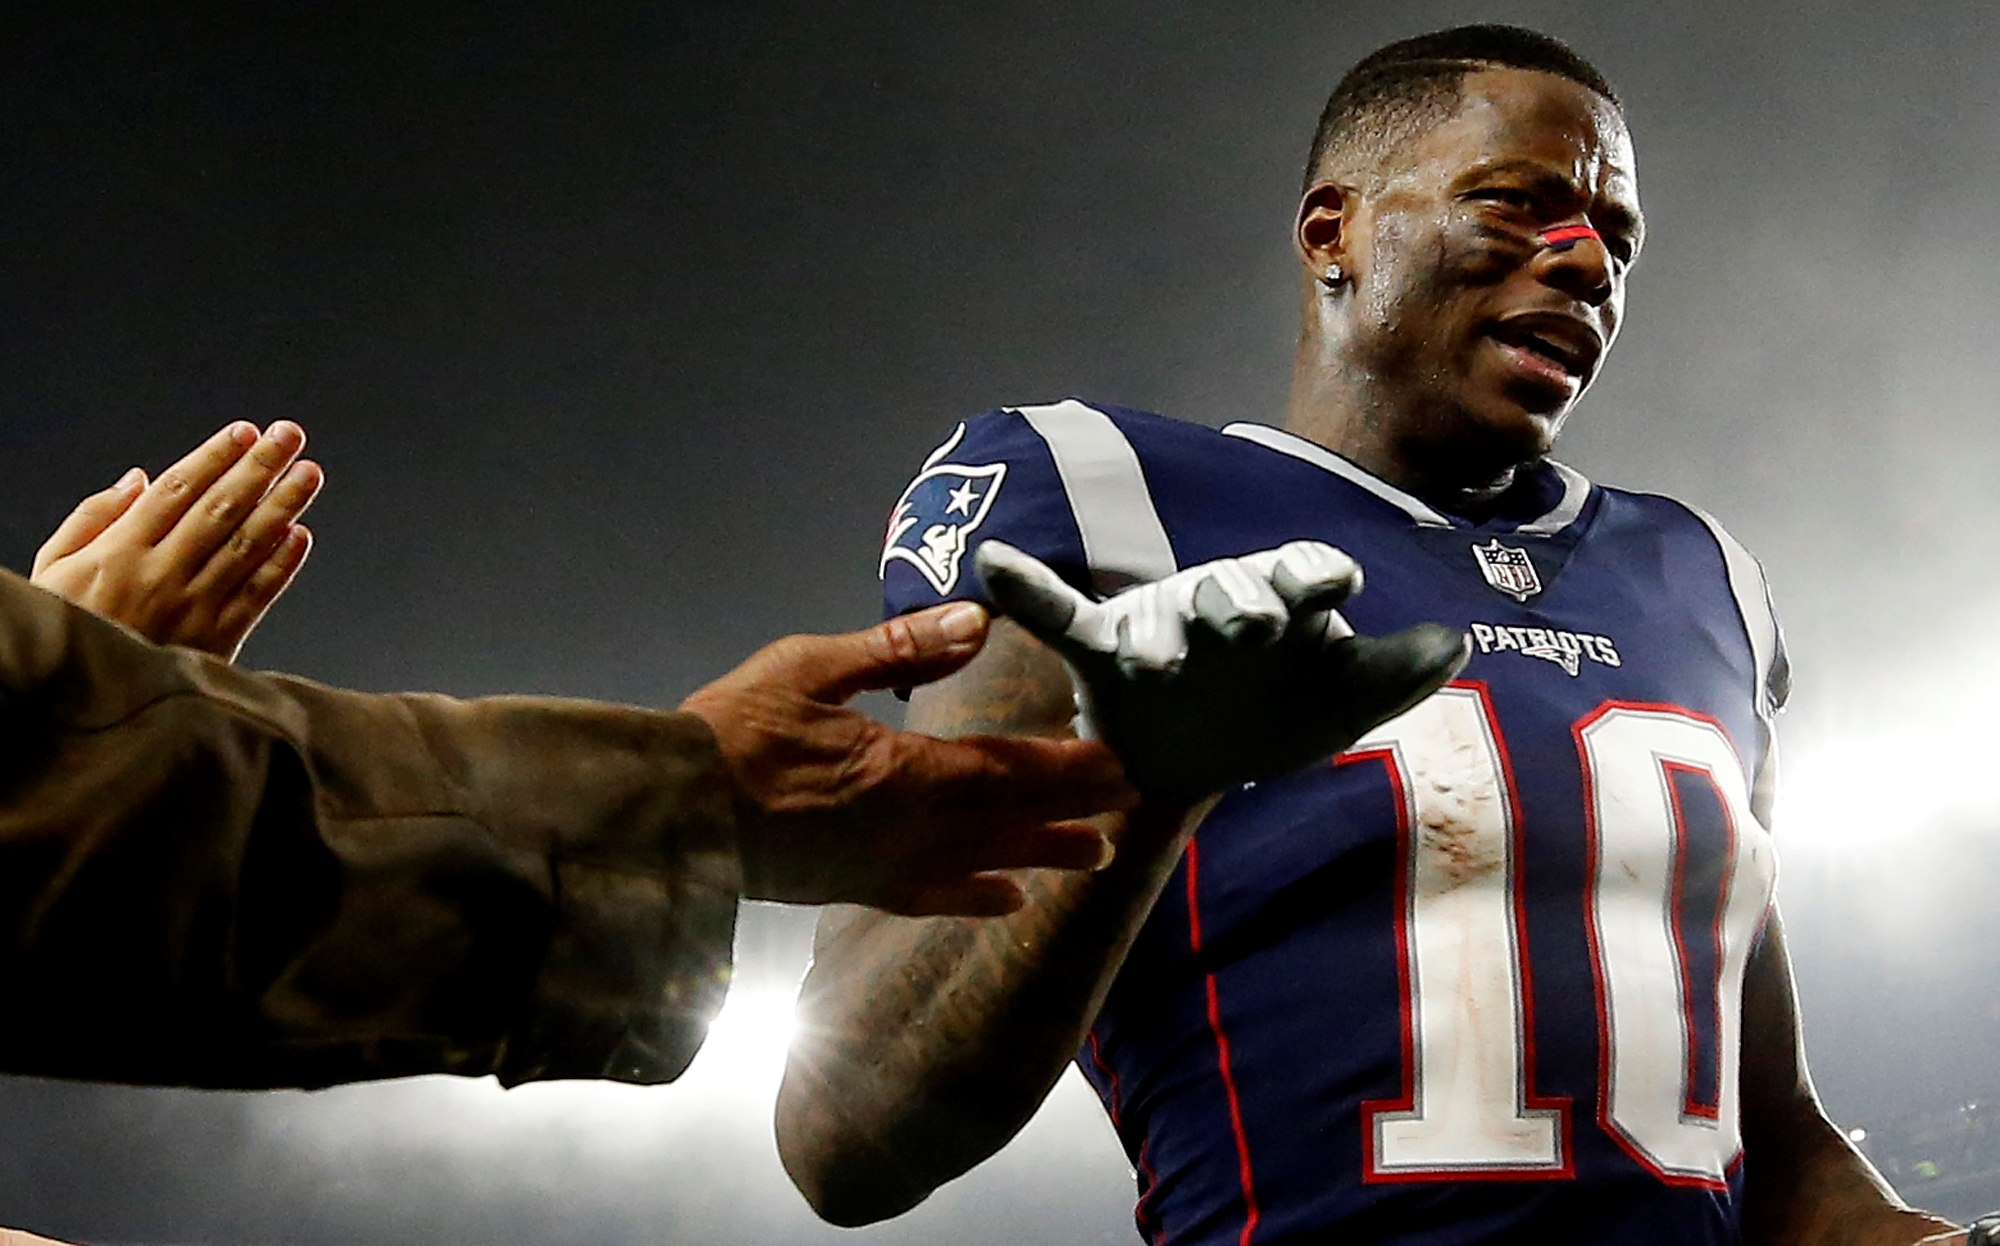 Josh Gordon signs tender to play for Patriots in 2019 - The